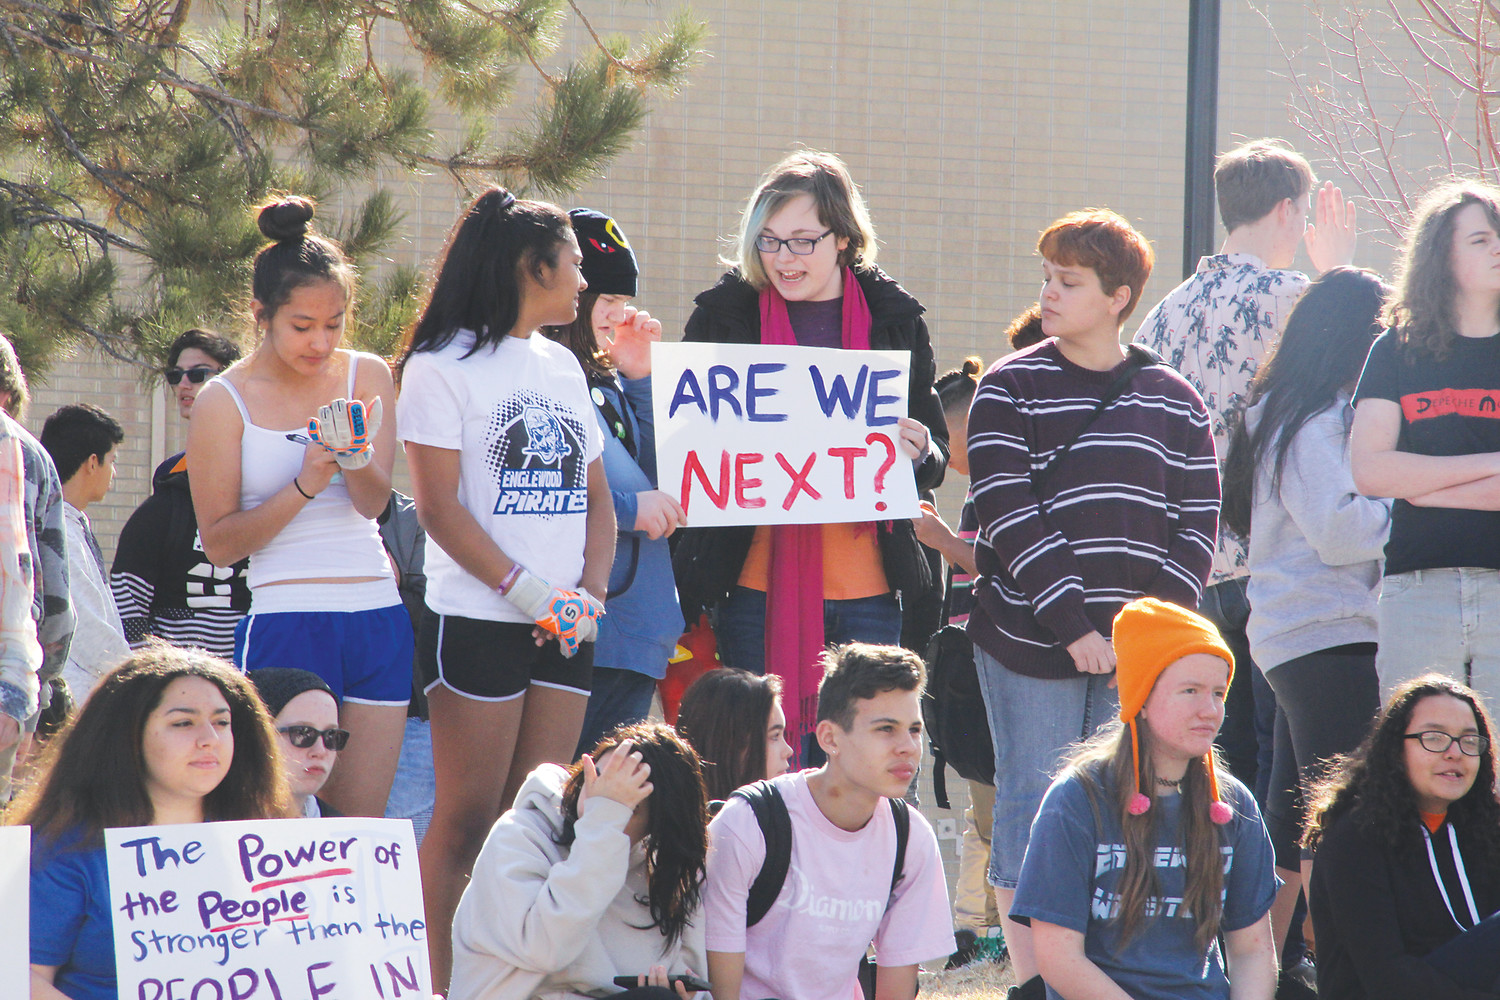 USA students rally nationwide against gun violence